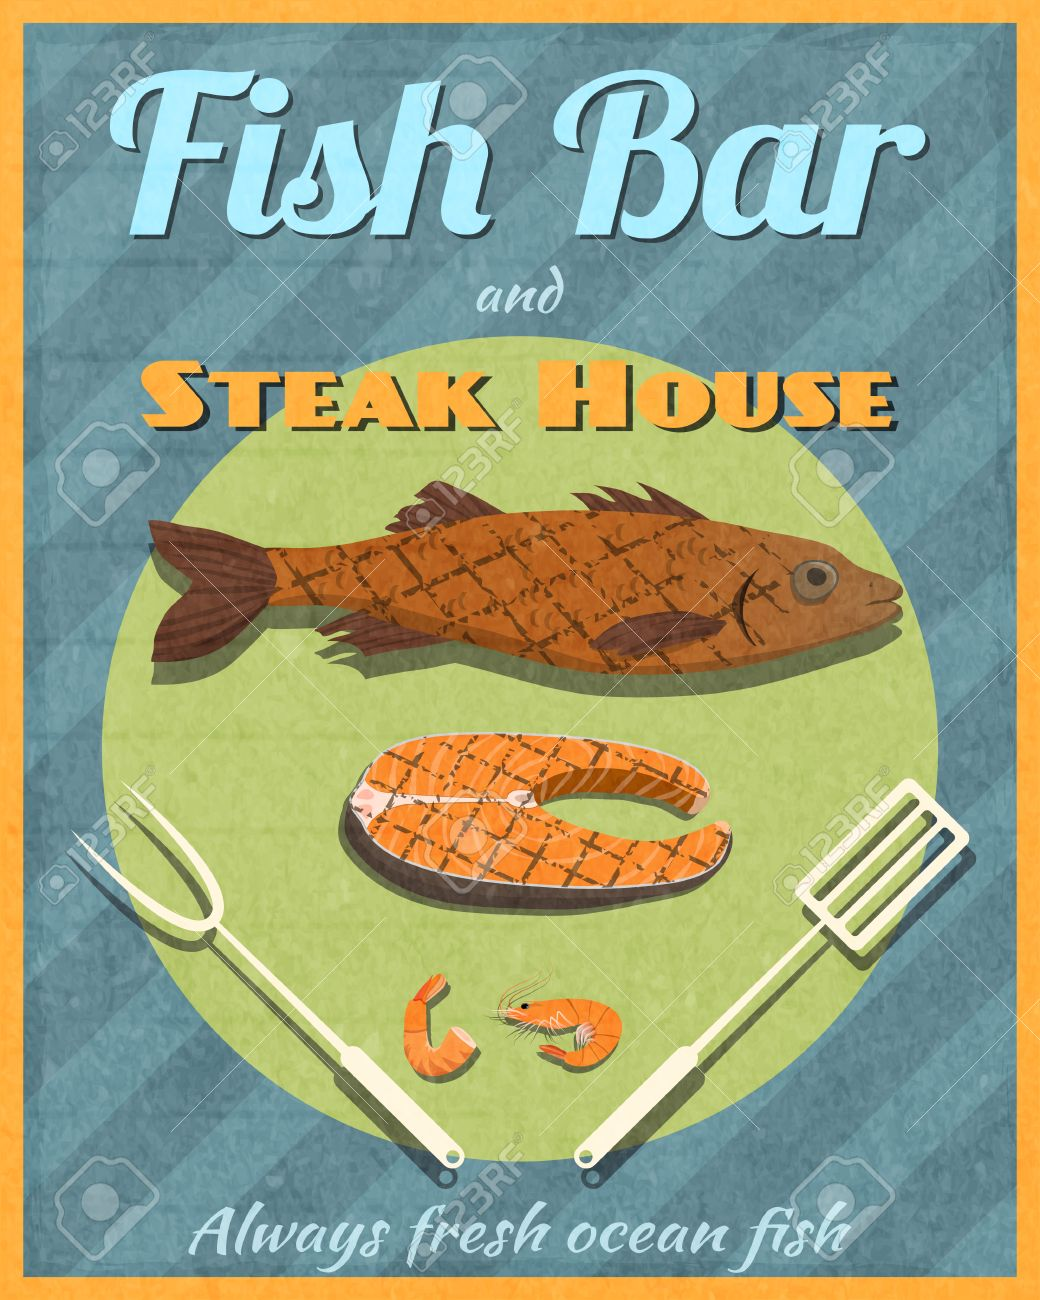 Fish Bar Steak House Retro Vintage Grill Restaurant Poster Vector Royalty Free Cliparts Vectors And Stock Illustration Image 27942268